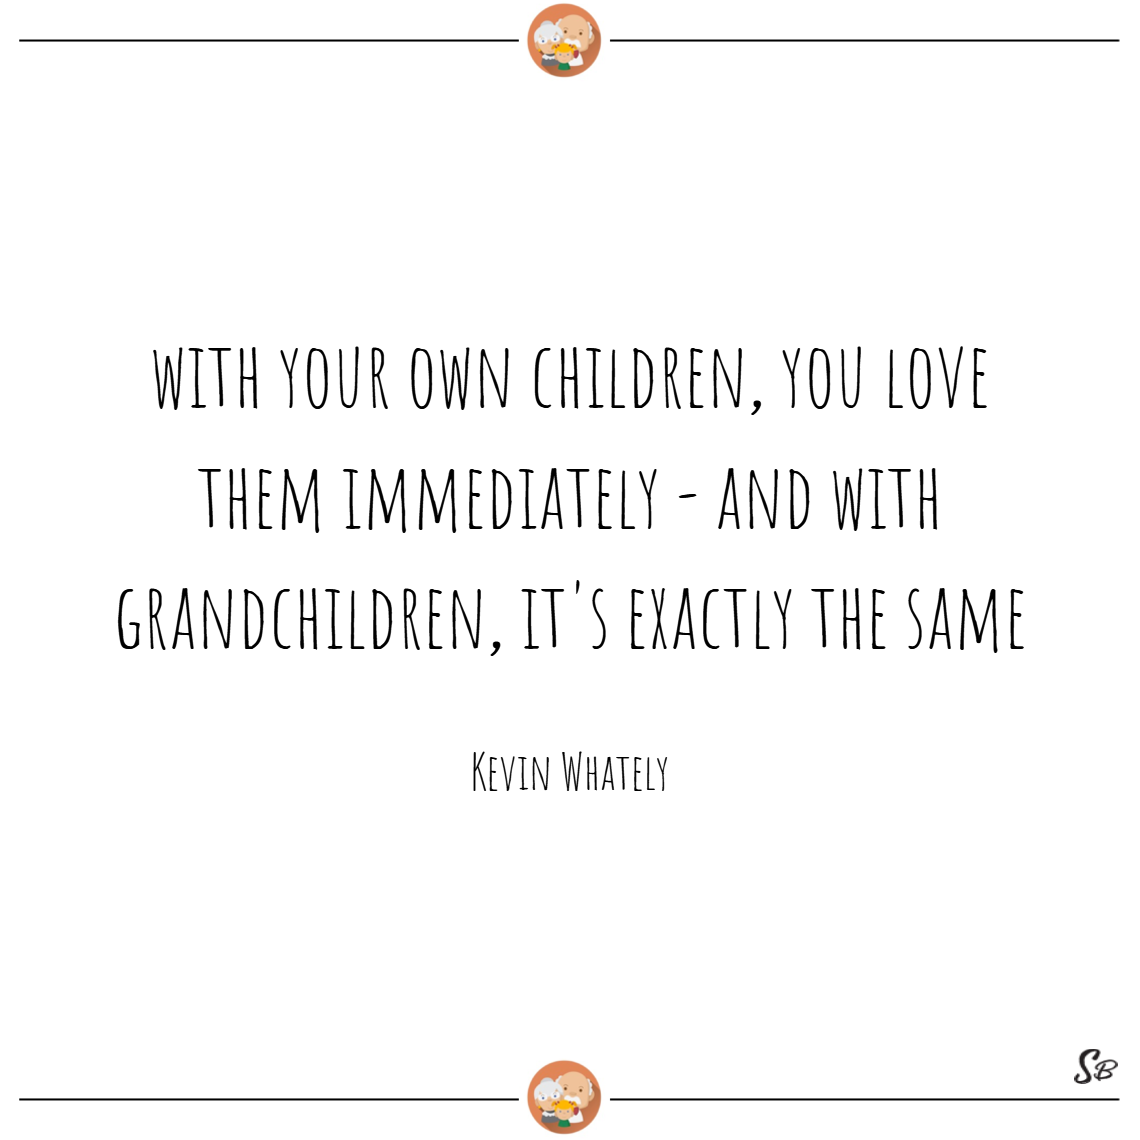 With your own children, you love them immediately and with grandchildren, it's exactly the same. – kevin whately (1)